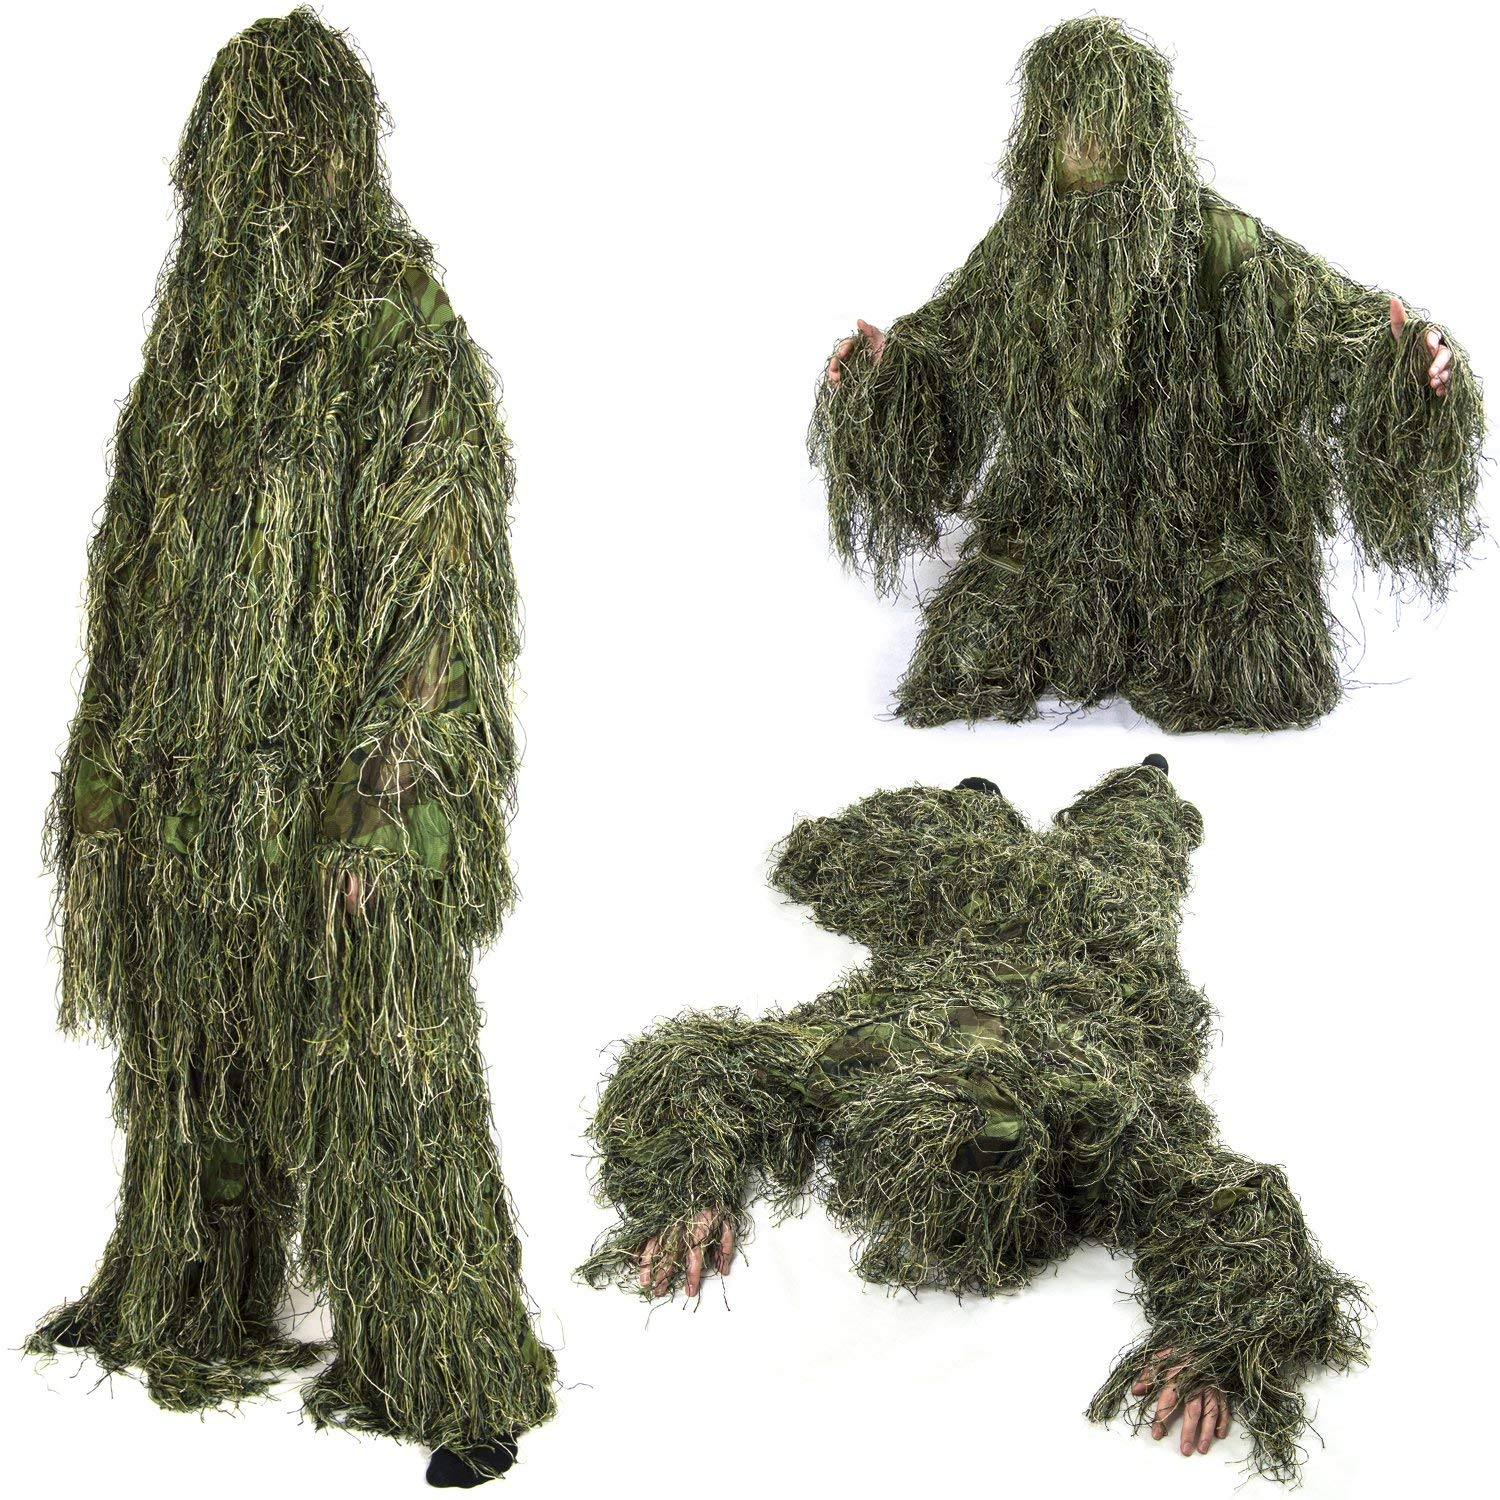 7e645864004d2 Get Quotations · 360 Tactical Outdoor Camo Suits Ghillie Suits 3D Leaves  Woodland Camouflage Clothing Army Sniper Military Clothes